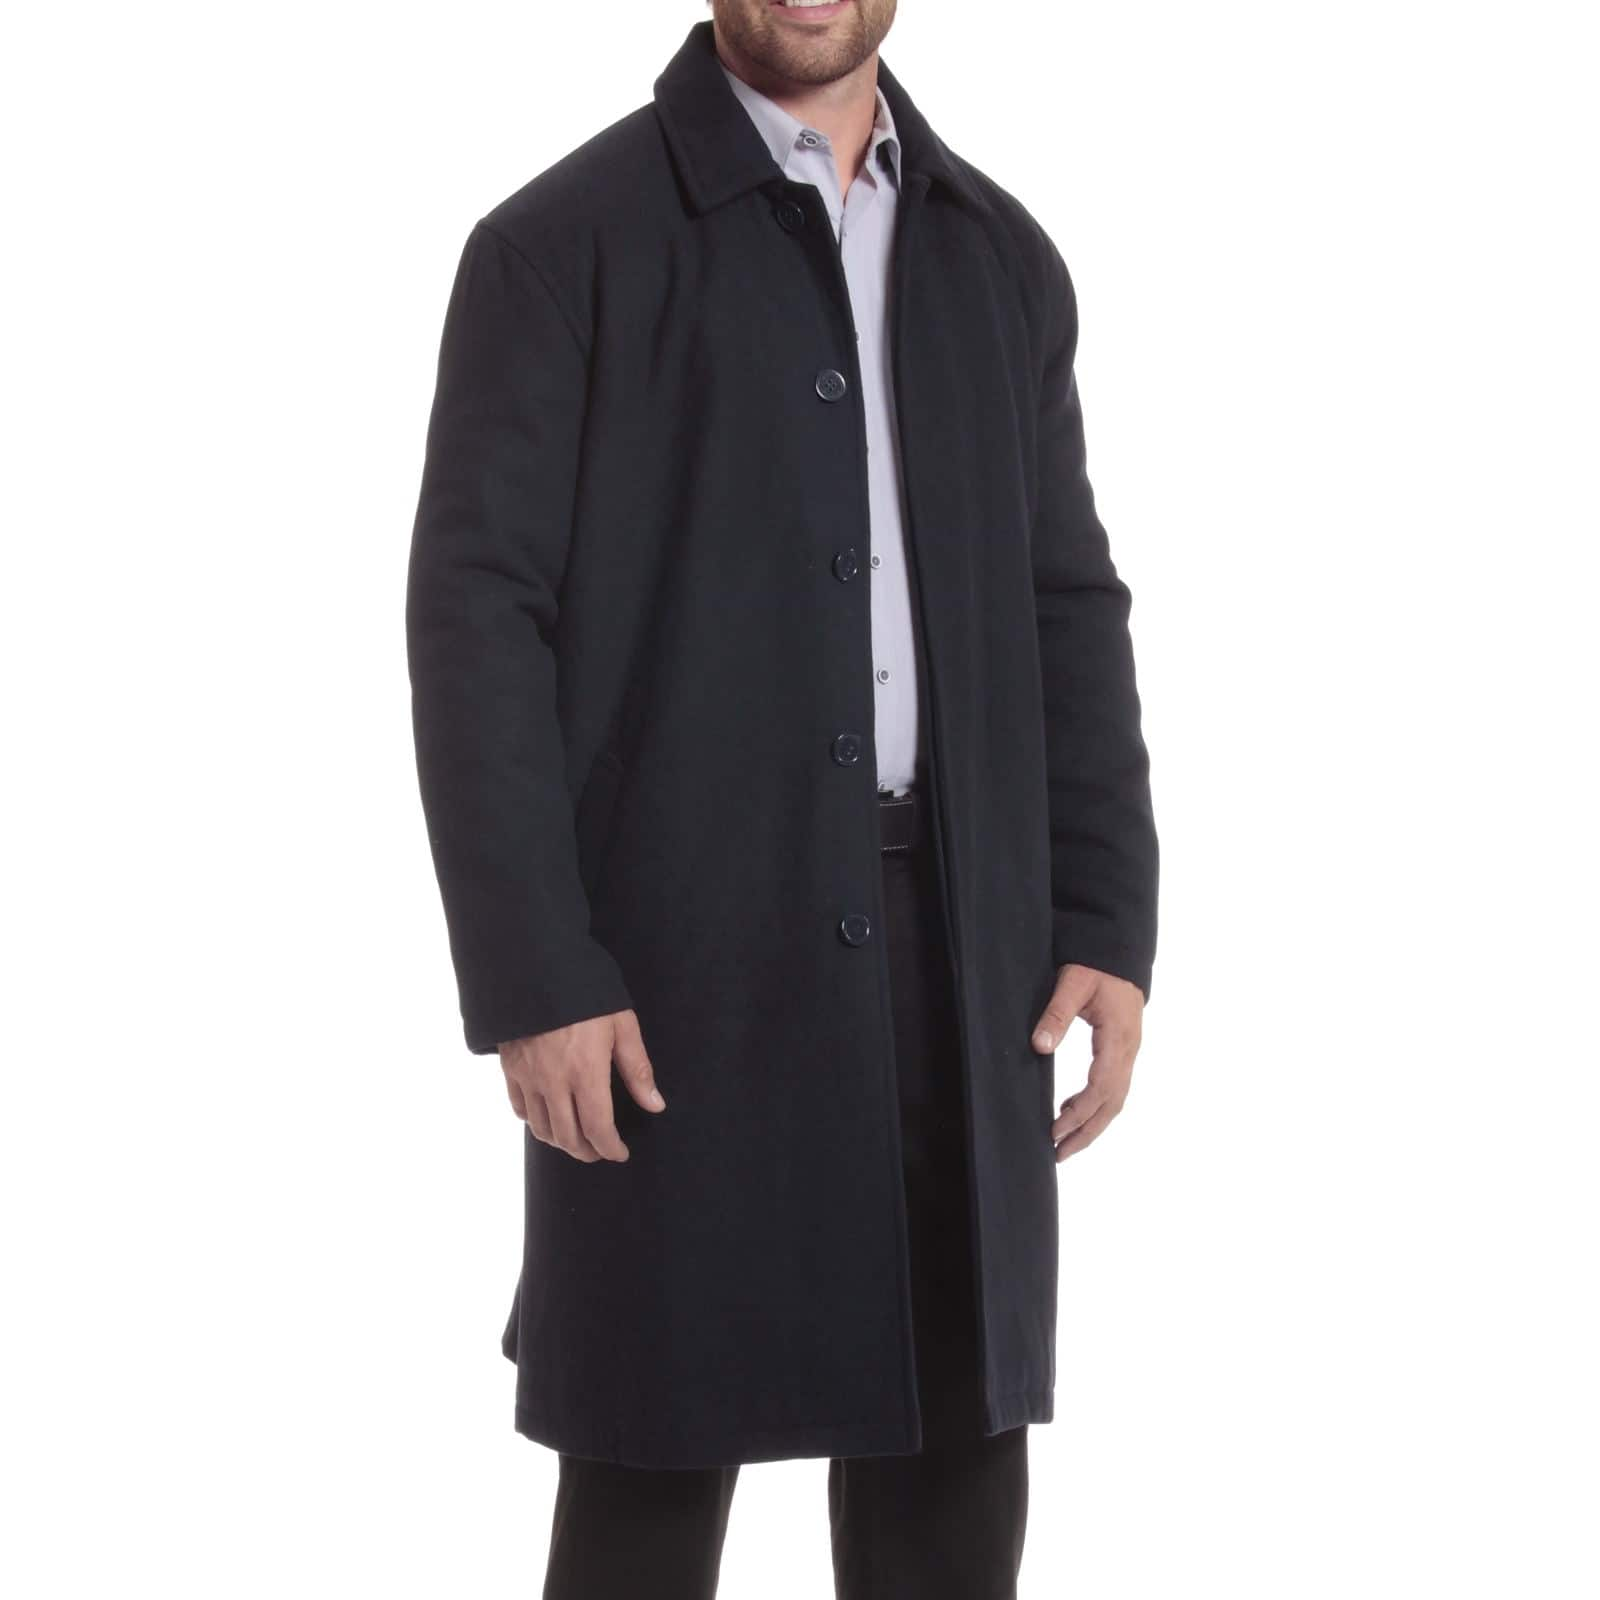 Alpine Swiss Zach Men's Wool Overcoat $35.99 + Free Shipping (eBay Daily Deal)